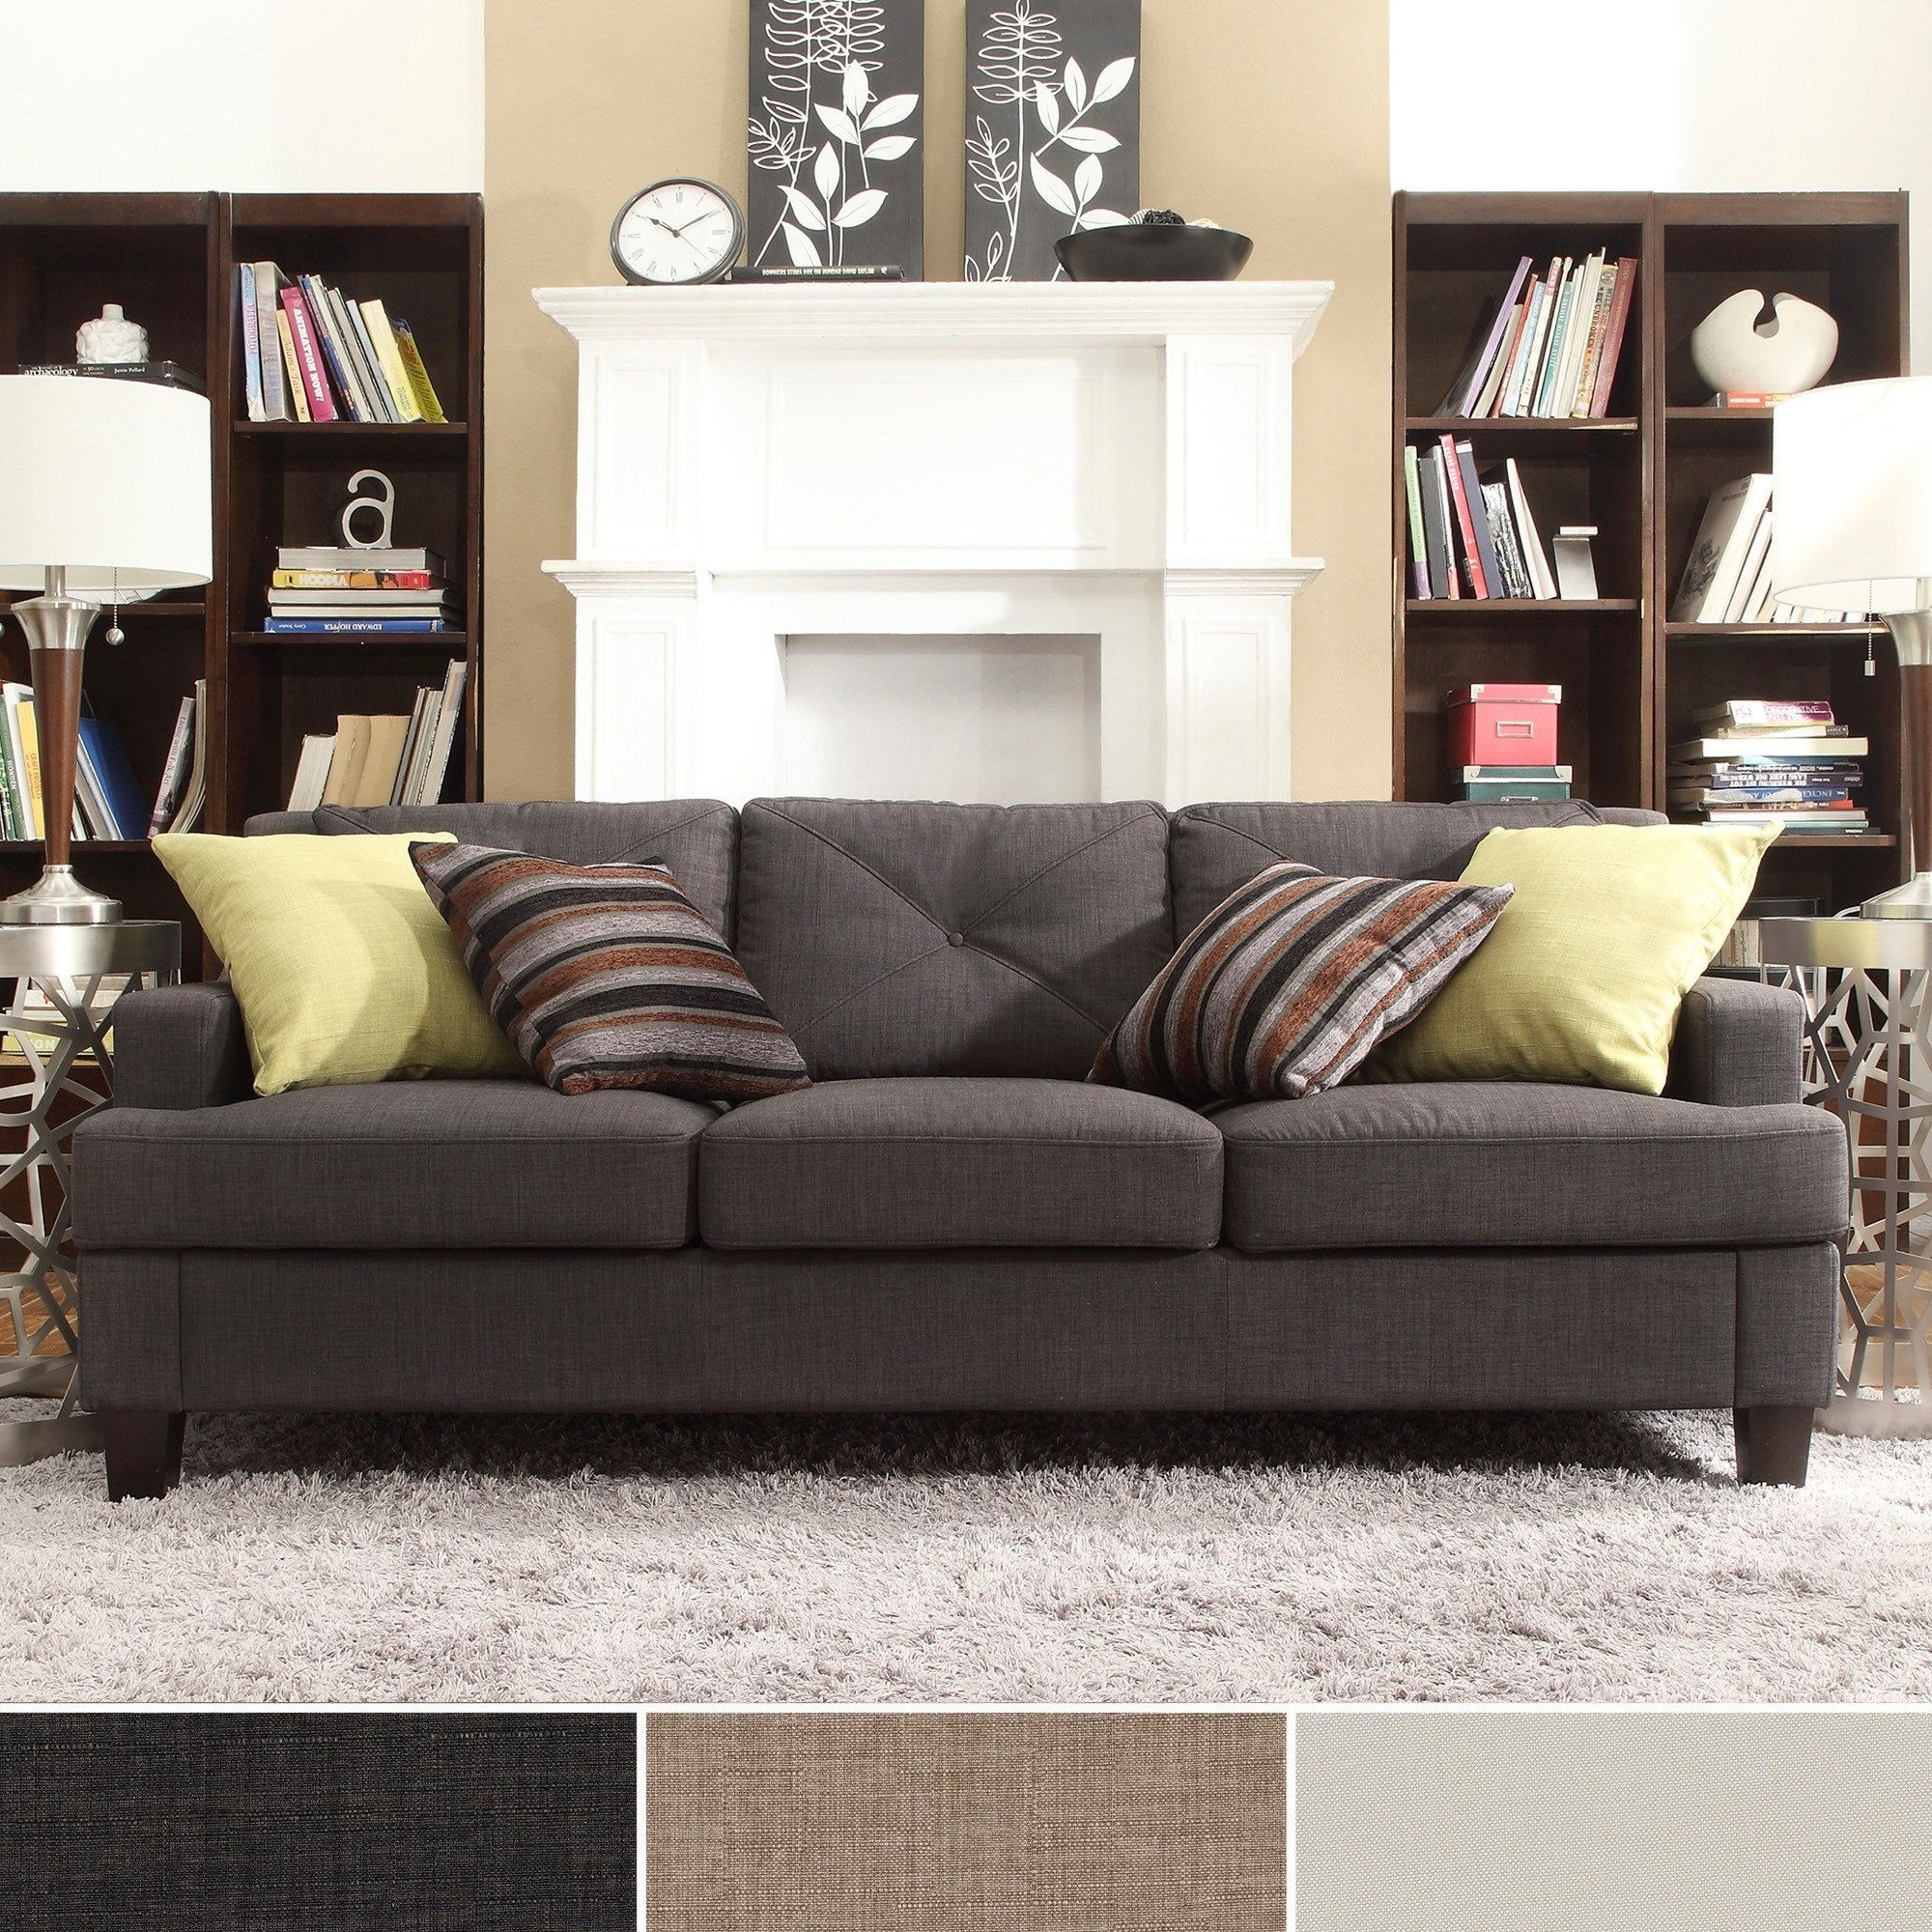 Elston Linen Tufted Sloped Track Sofa iNSPIRE Q Modern by iNSPIRE Q